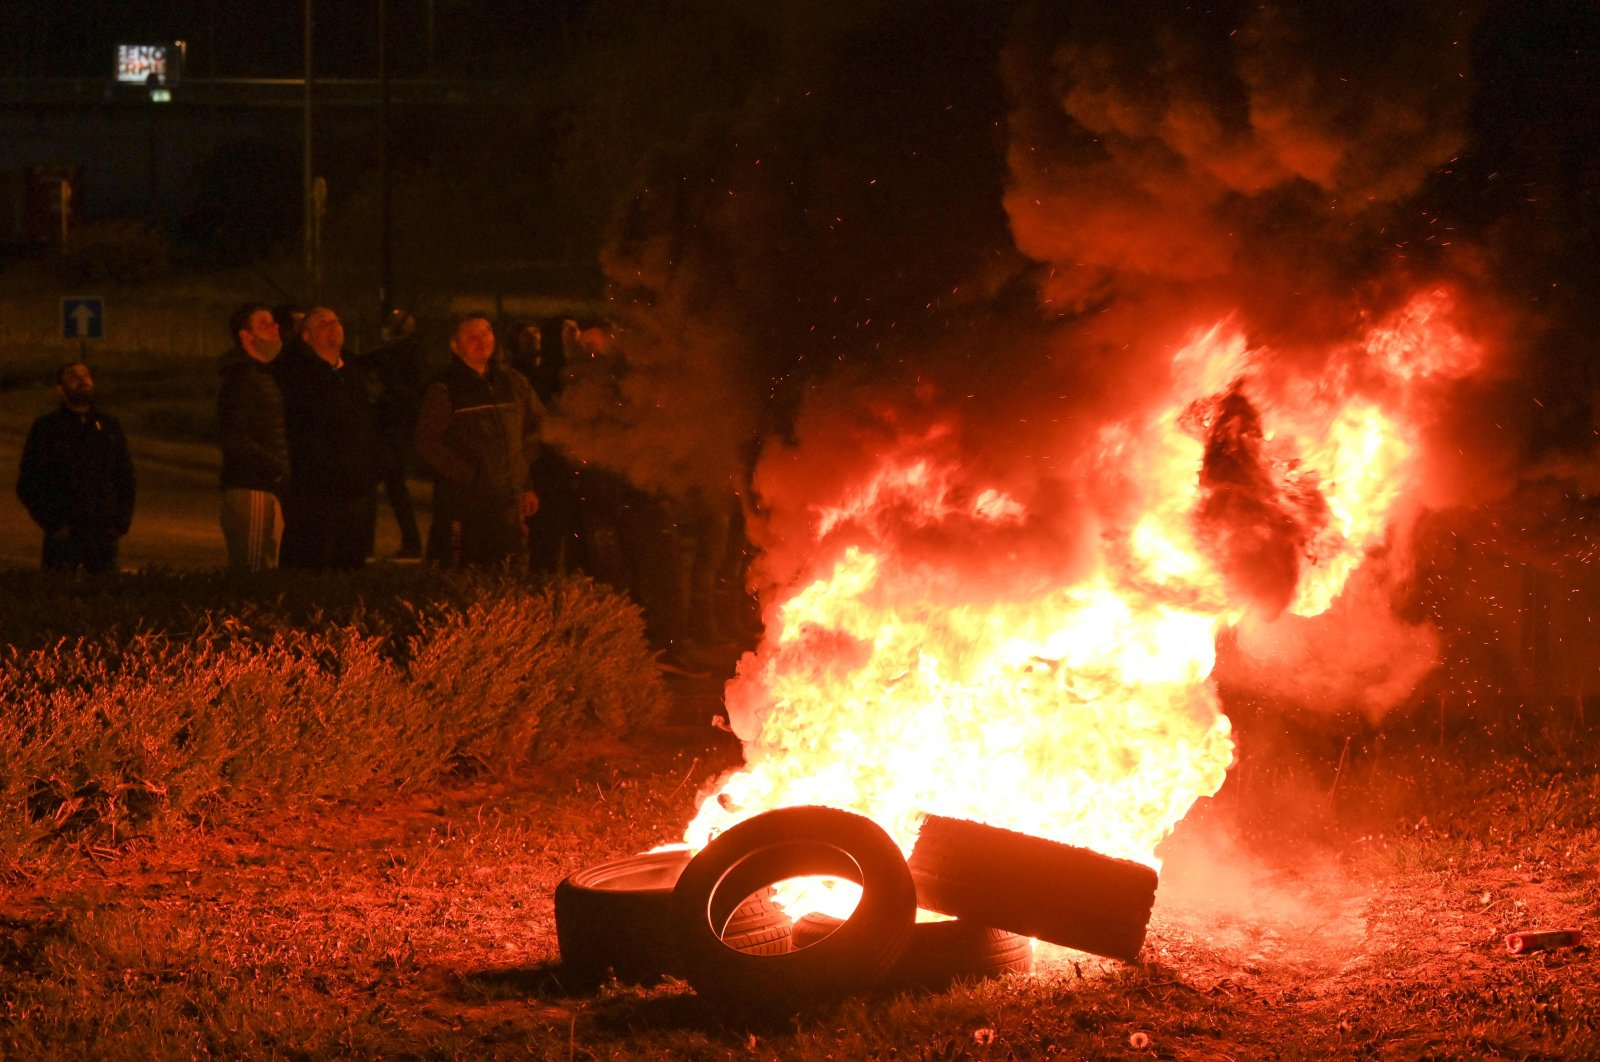 French fishermen stand near burning tyres as they gather as part of a protest action against the delay in granting licenses to access British waters at the port of Boulogne-sur-Mer on April 22, 2021. (AFP Photo)